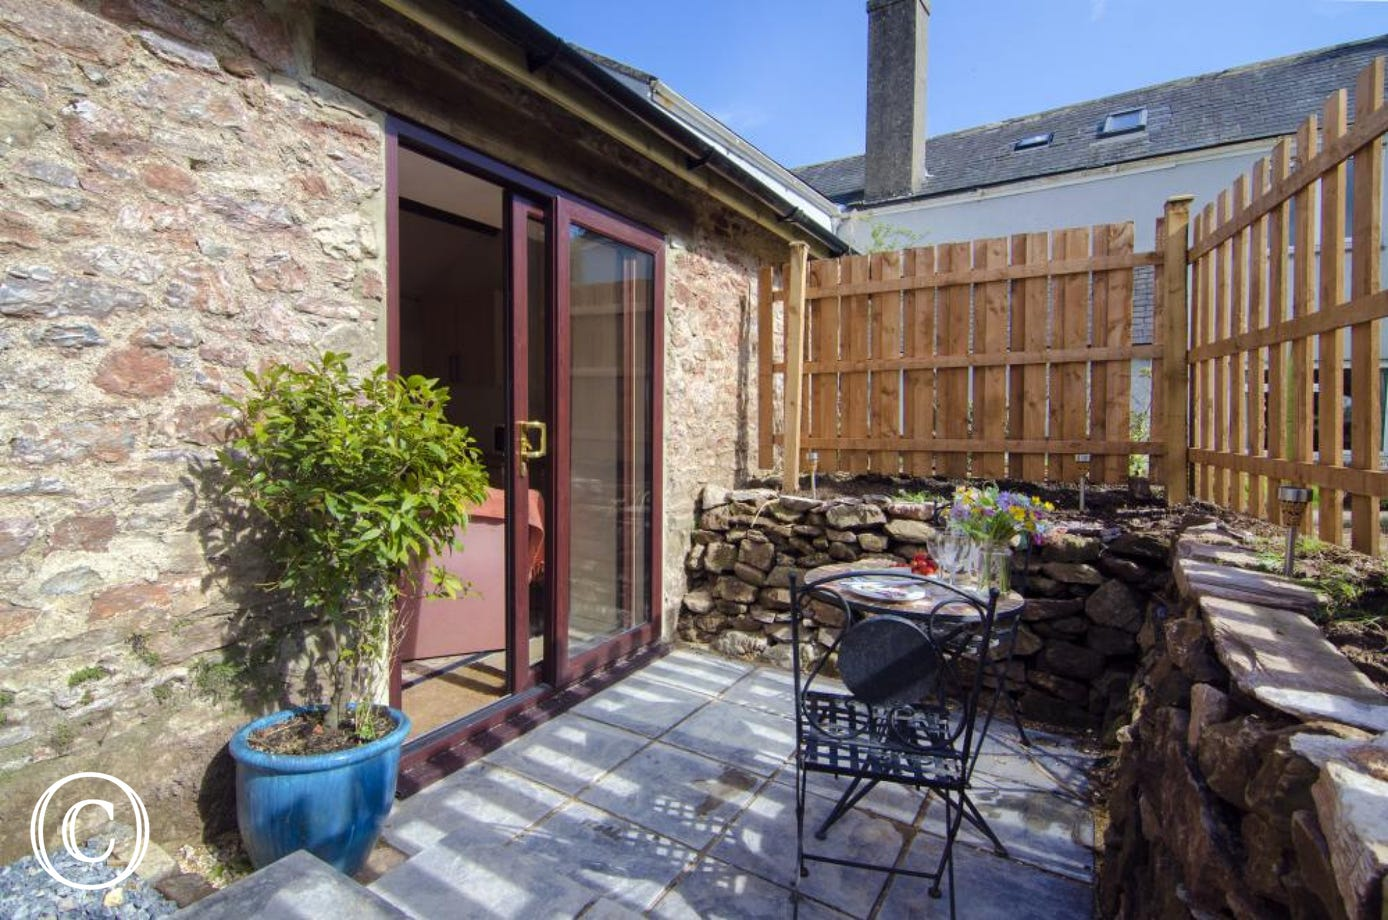 Galmpton Stable sunny patio area